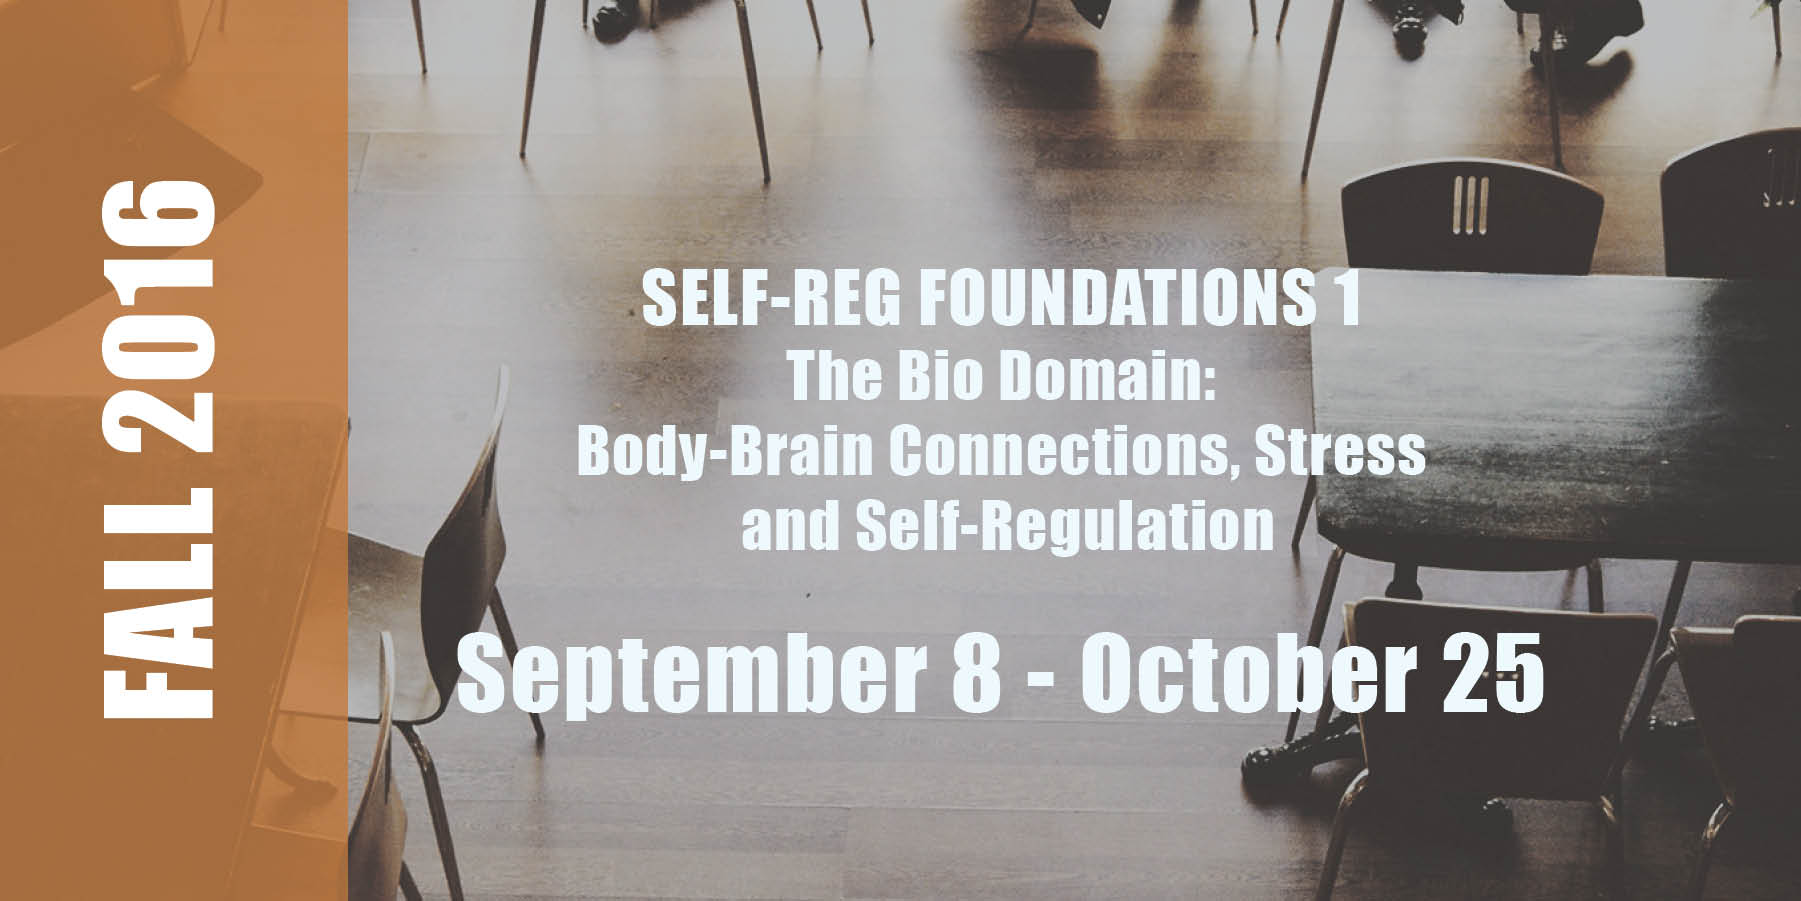 S-R Foundations 1    Date:  September 8 - October 25